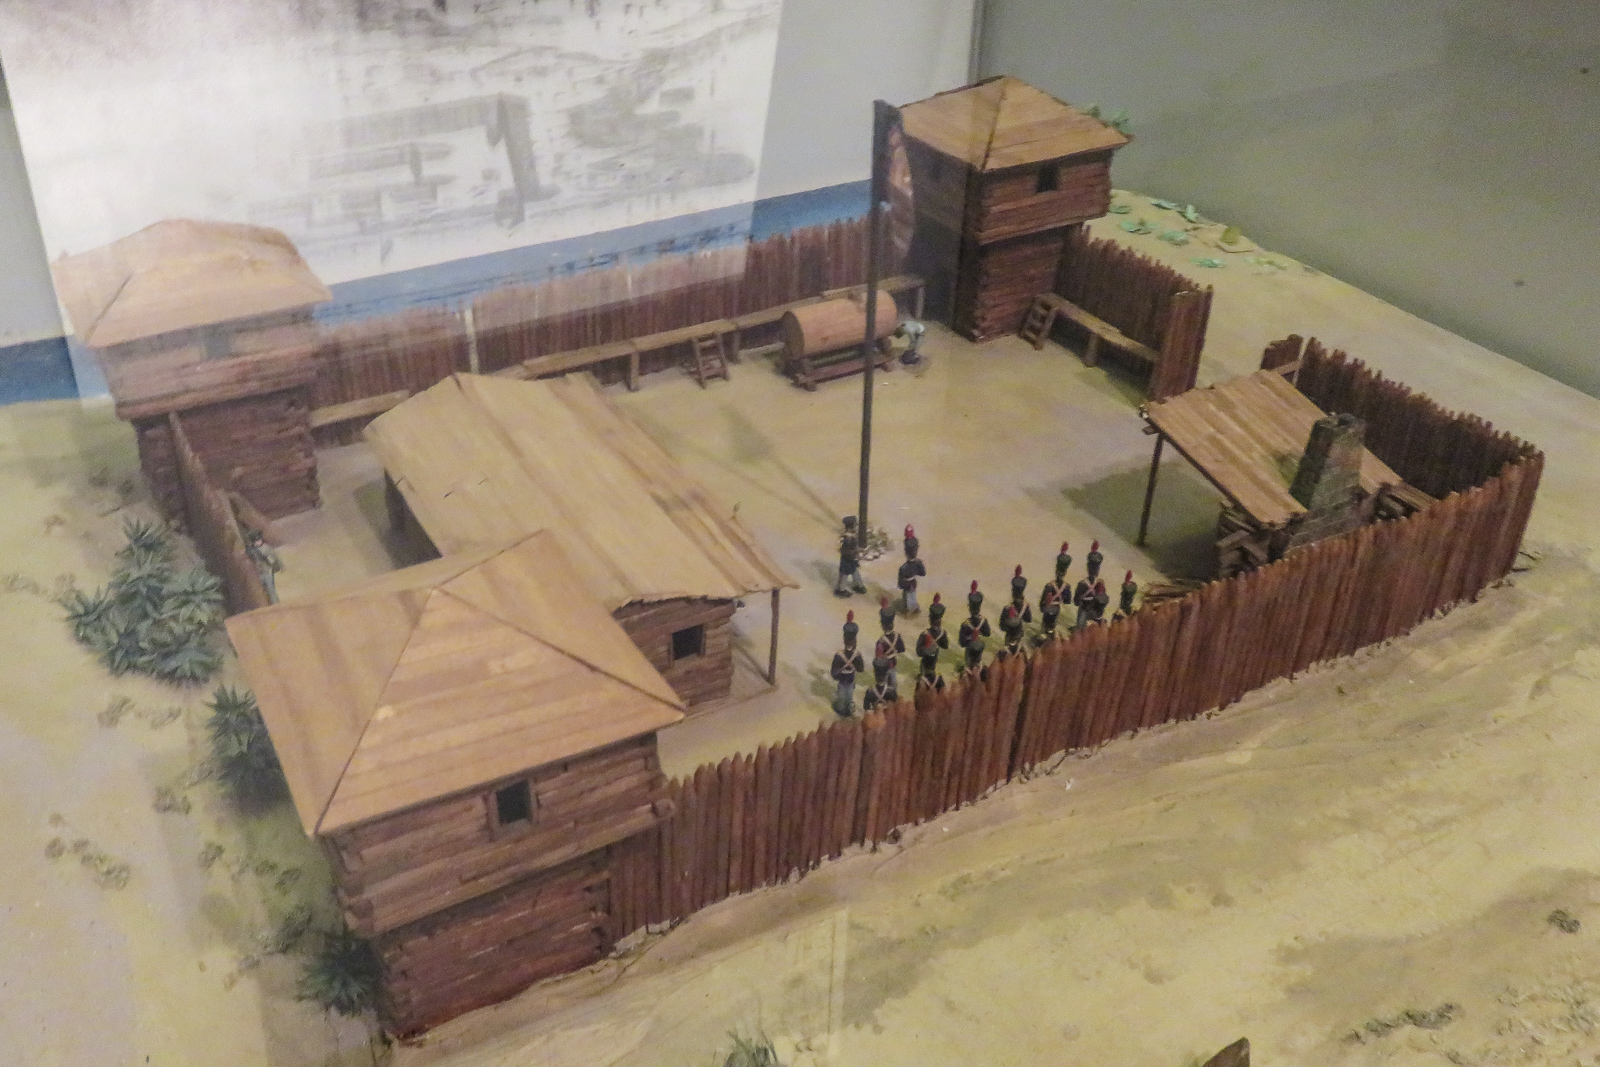 Model of one of the original 3 Forts located in Fort Lauderdale. Named after Major Lauderdale during the Seminole wars.